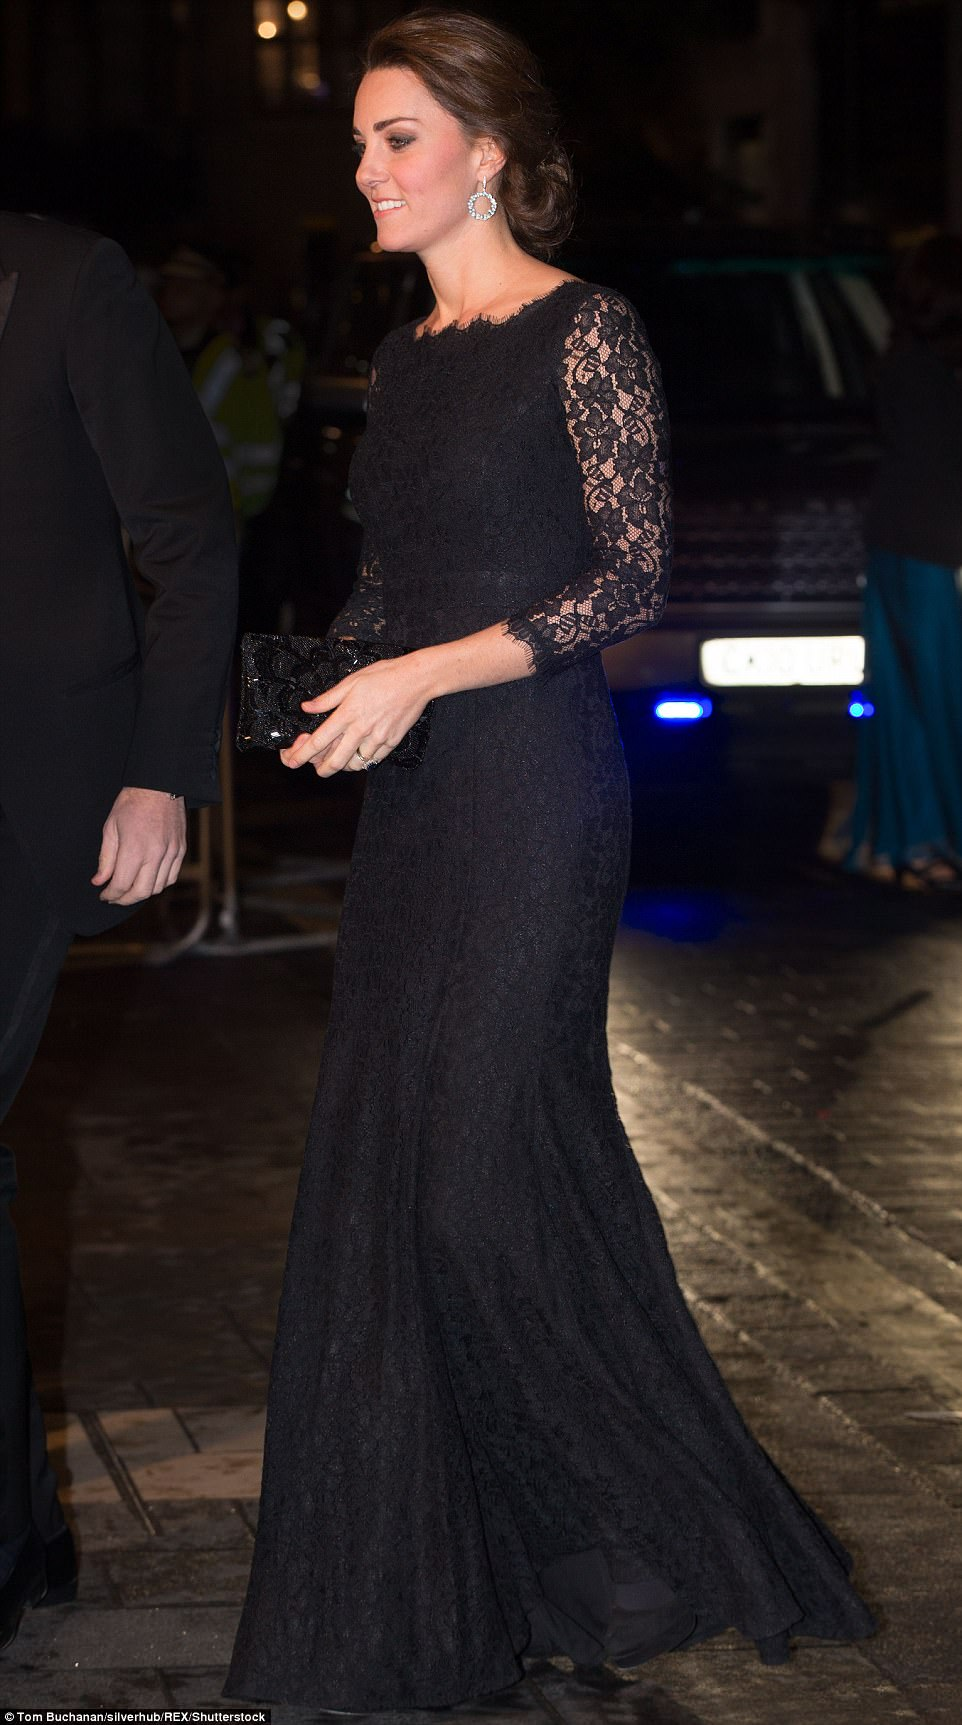 The Duchess of Cambridge looked elegant in a floor length Diane Von Furstenberg frock as she attended the charity gala